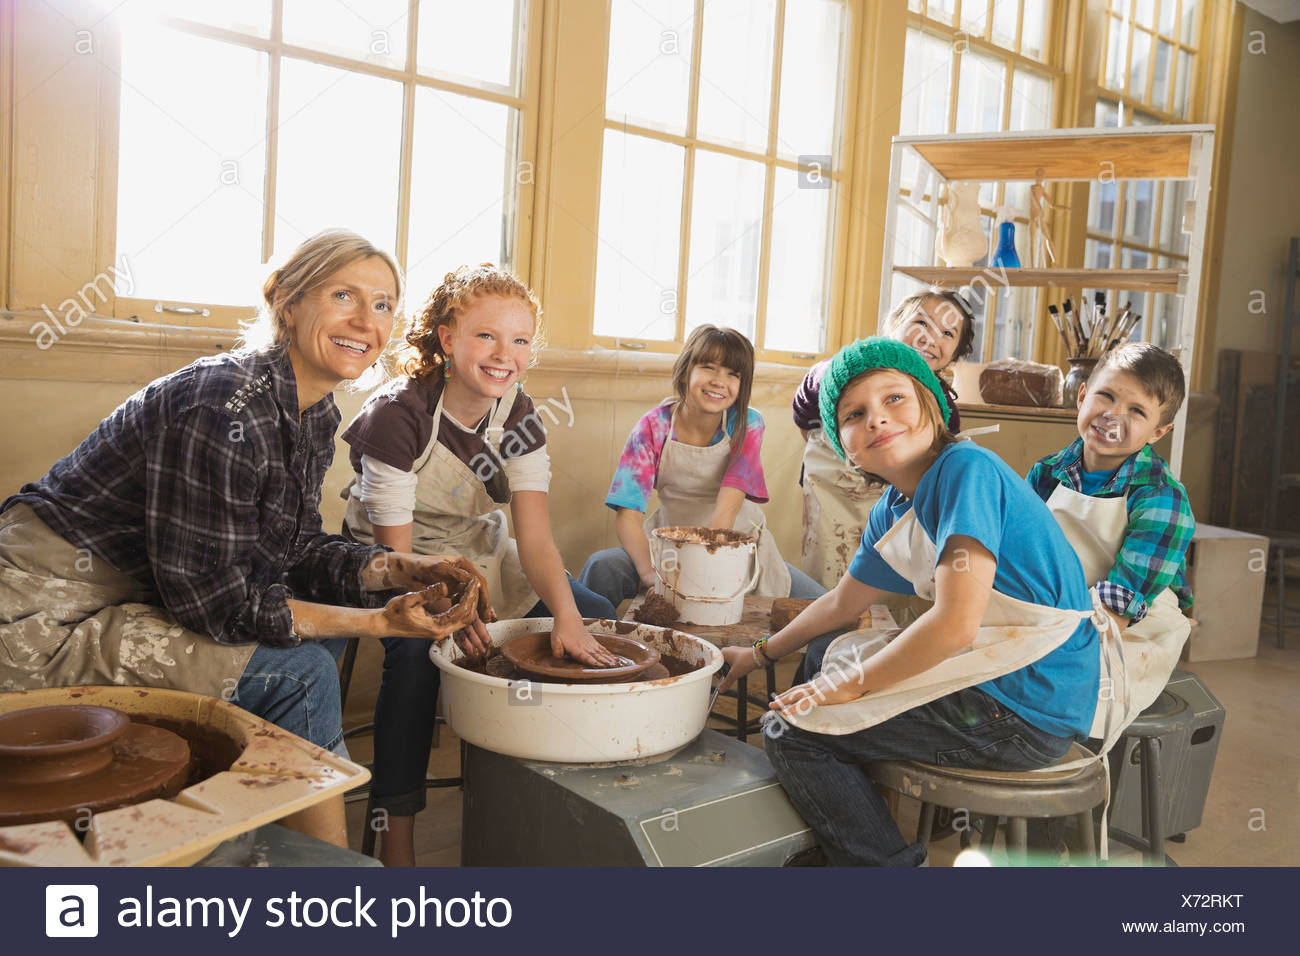 Teacher and students in pottery class Stock Photo